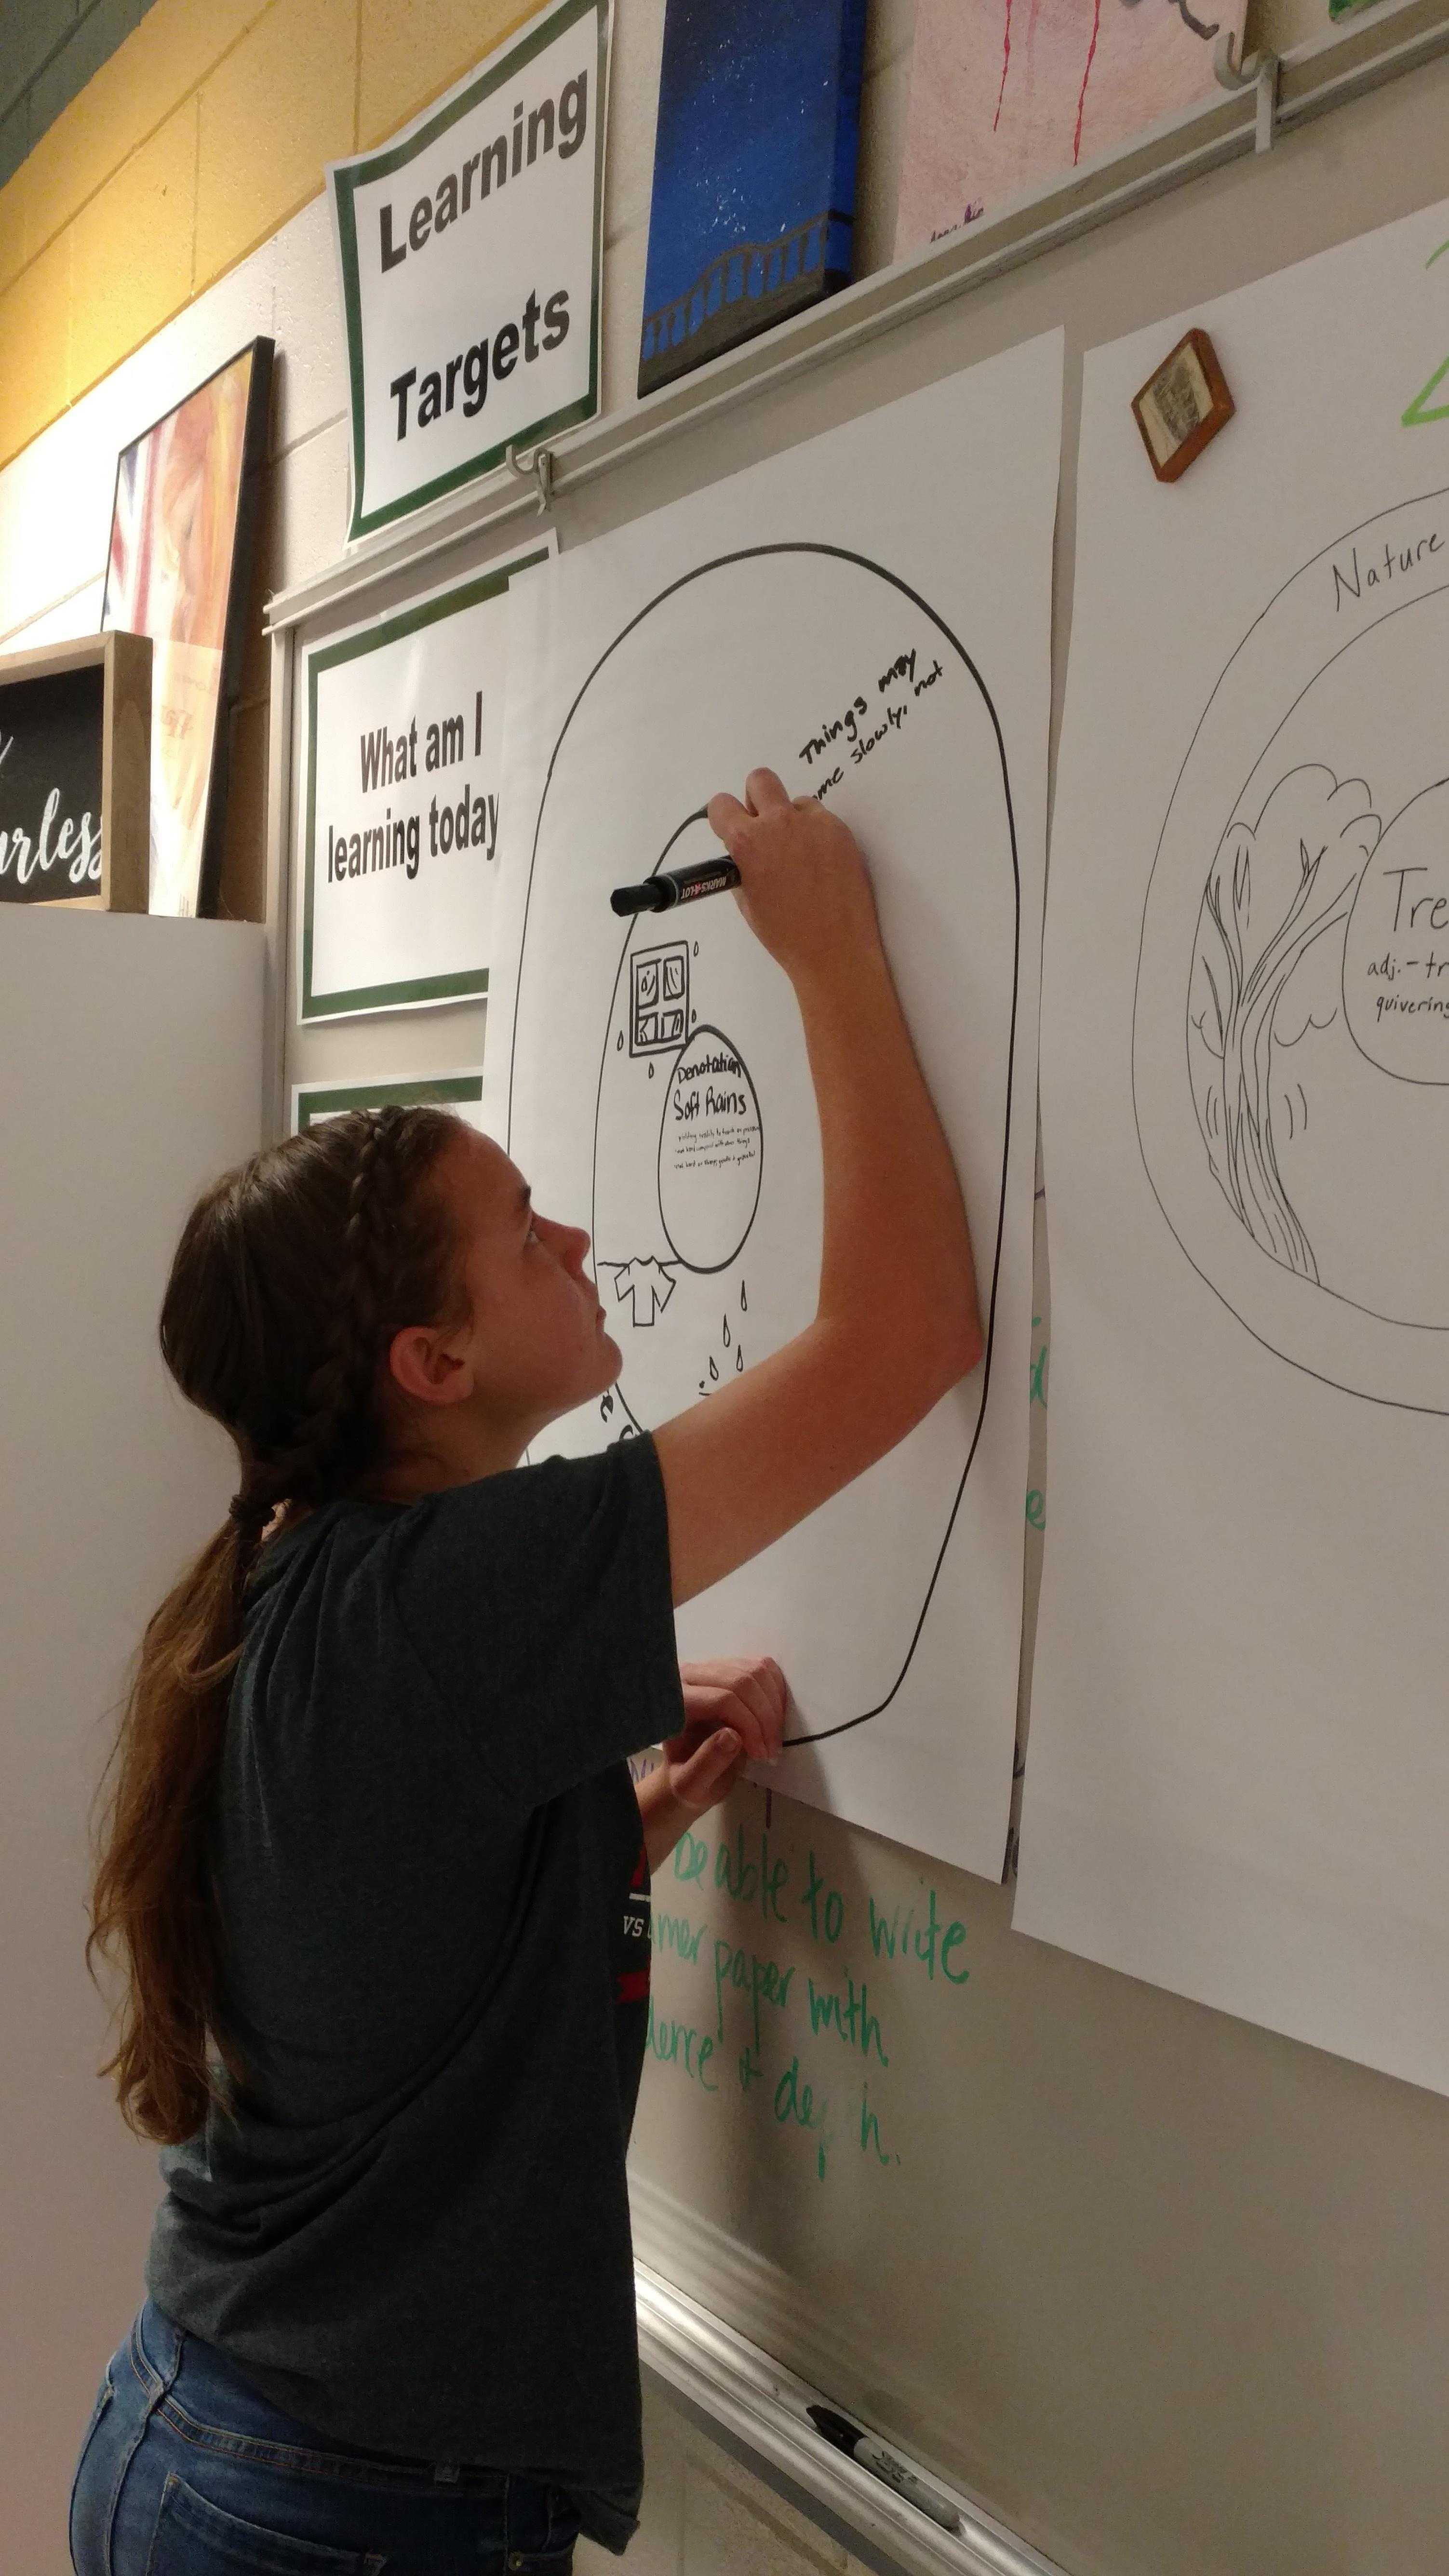 Poetry Pictures - Learning to analyze a poem by word choice